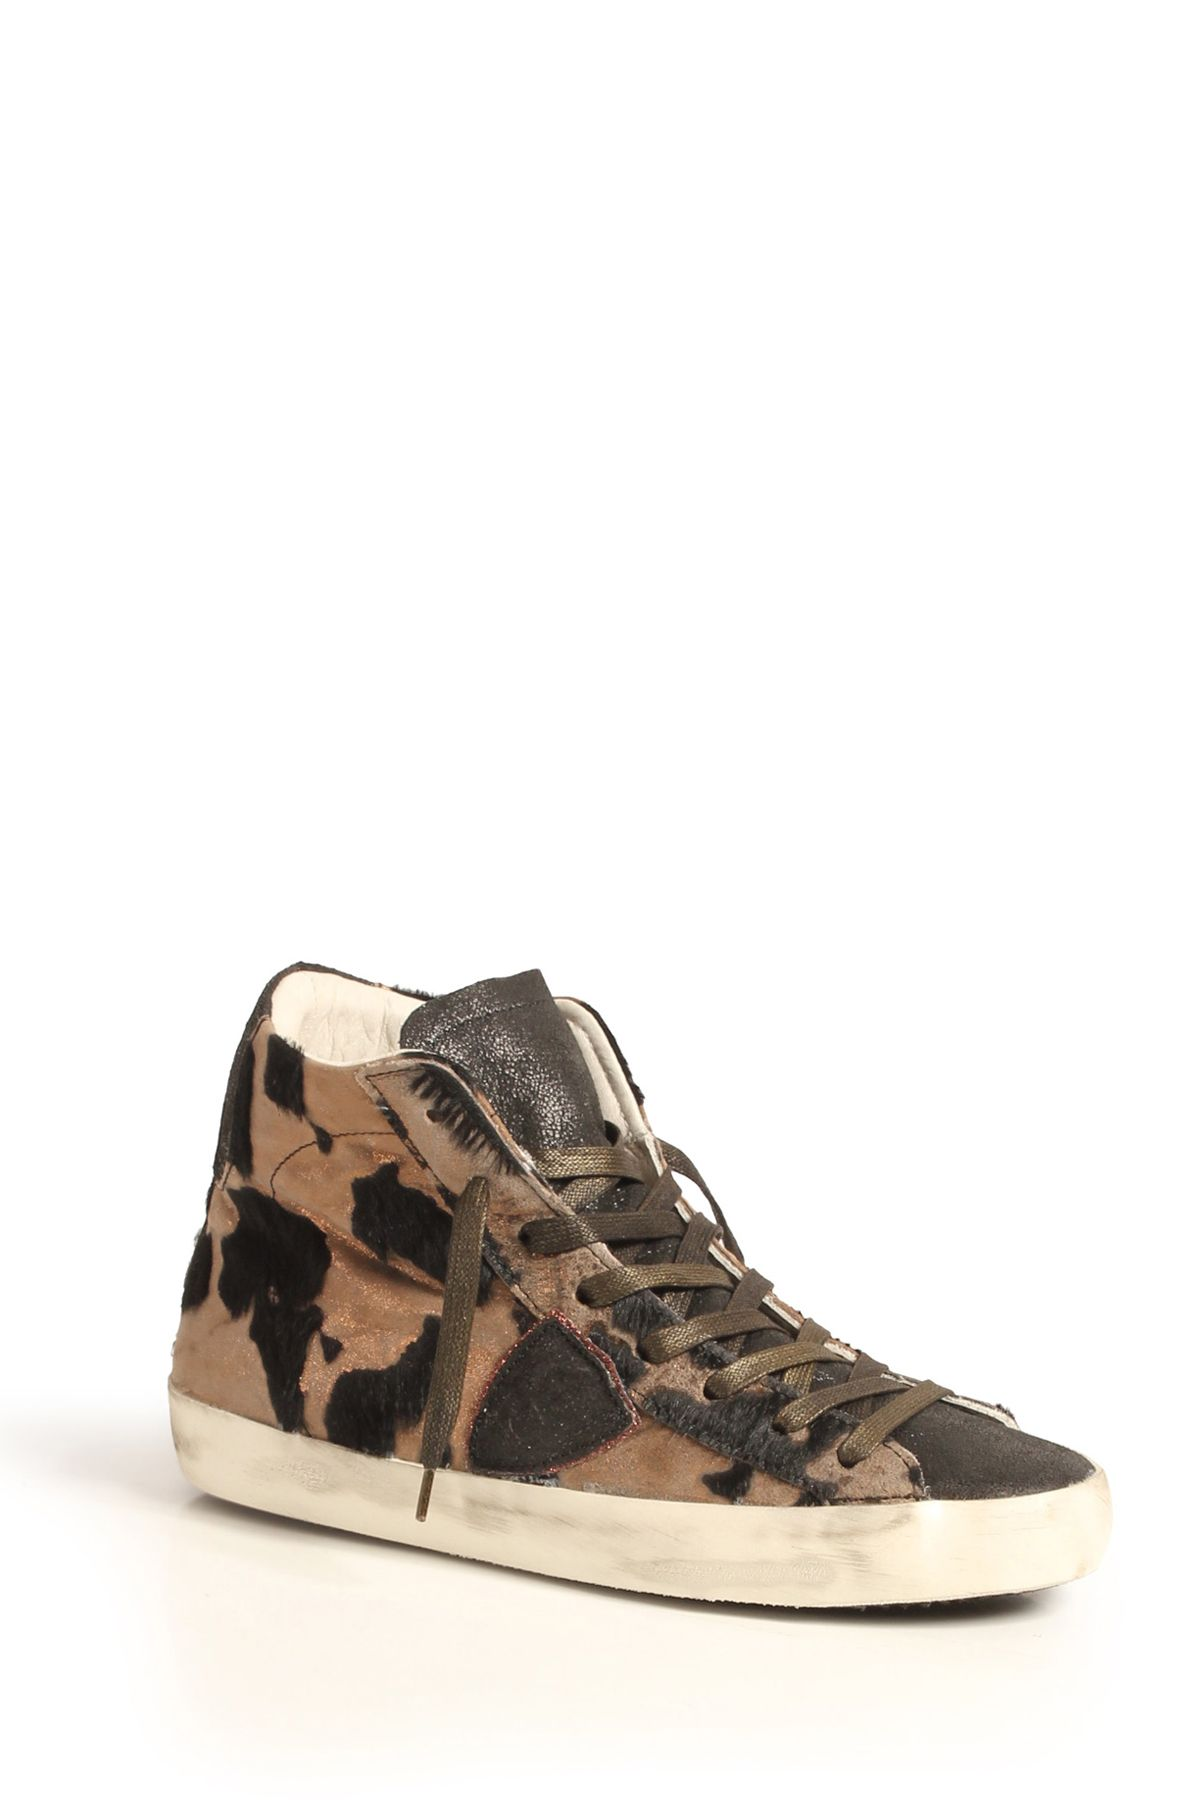 PHILIPPE MODEL Sneaker CLASSIC HIGH LEO bei myClassico Online Shop für TOP-Fashion